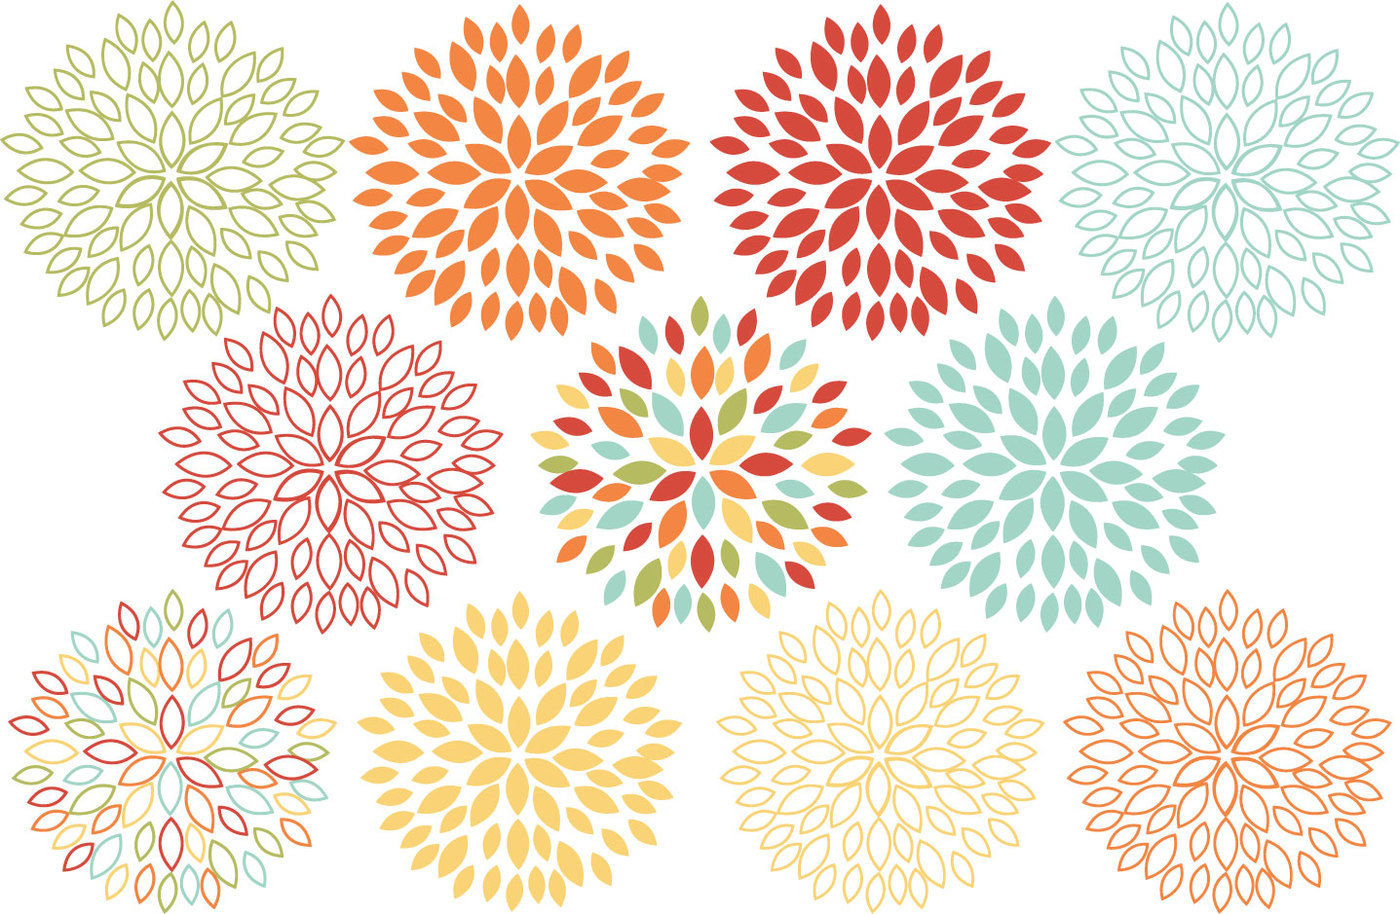 Blooming blossom clipart clip freeuse Blooming Blossom Flowers Clip Art By Sonya DeHart Design ... clip freeuse